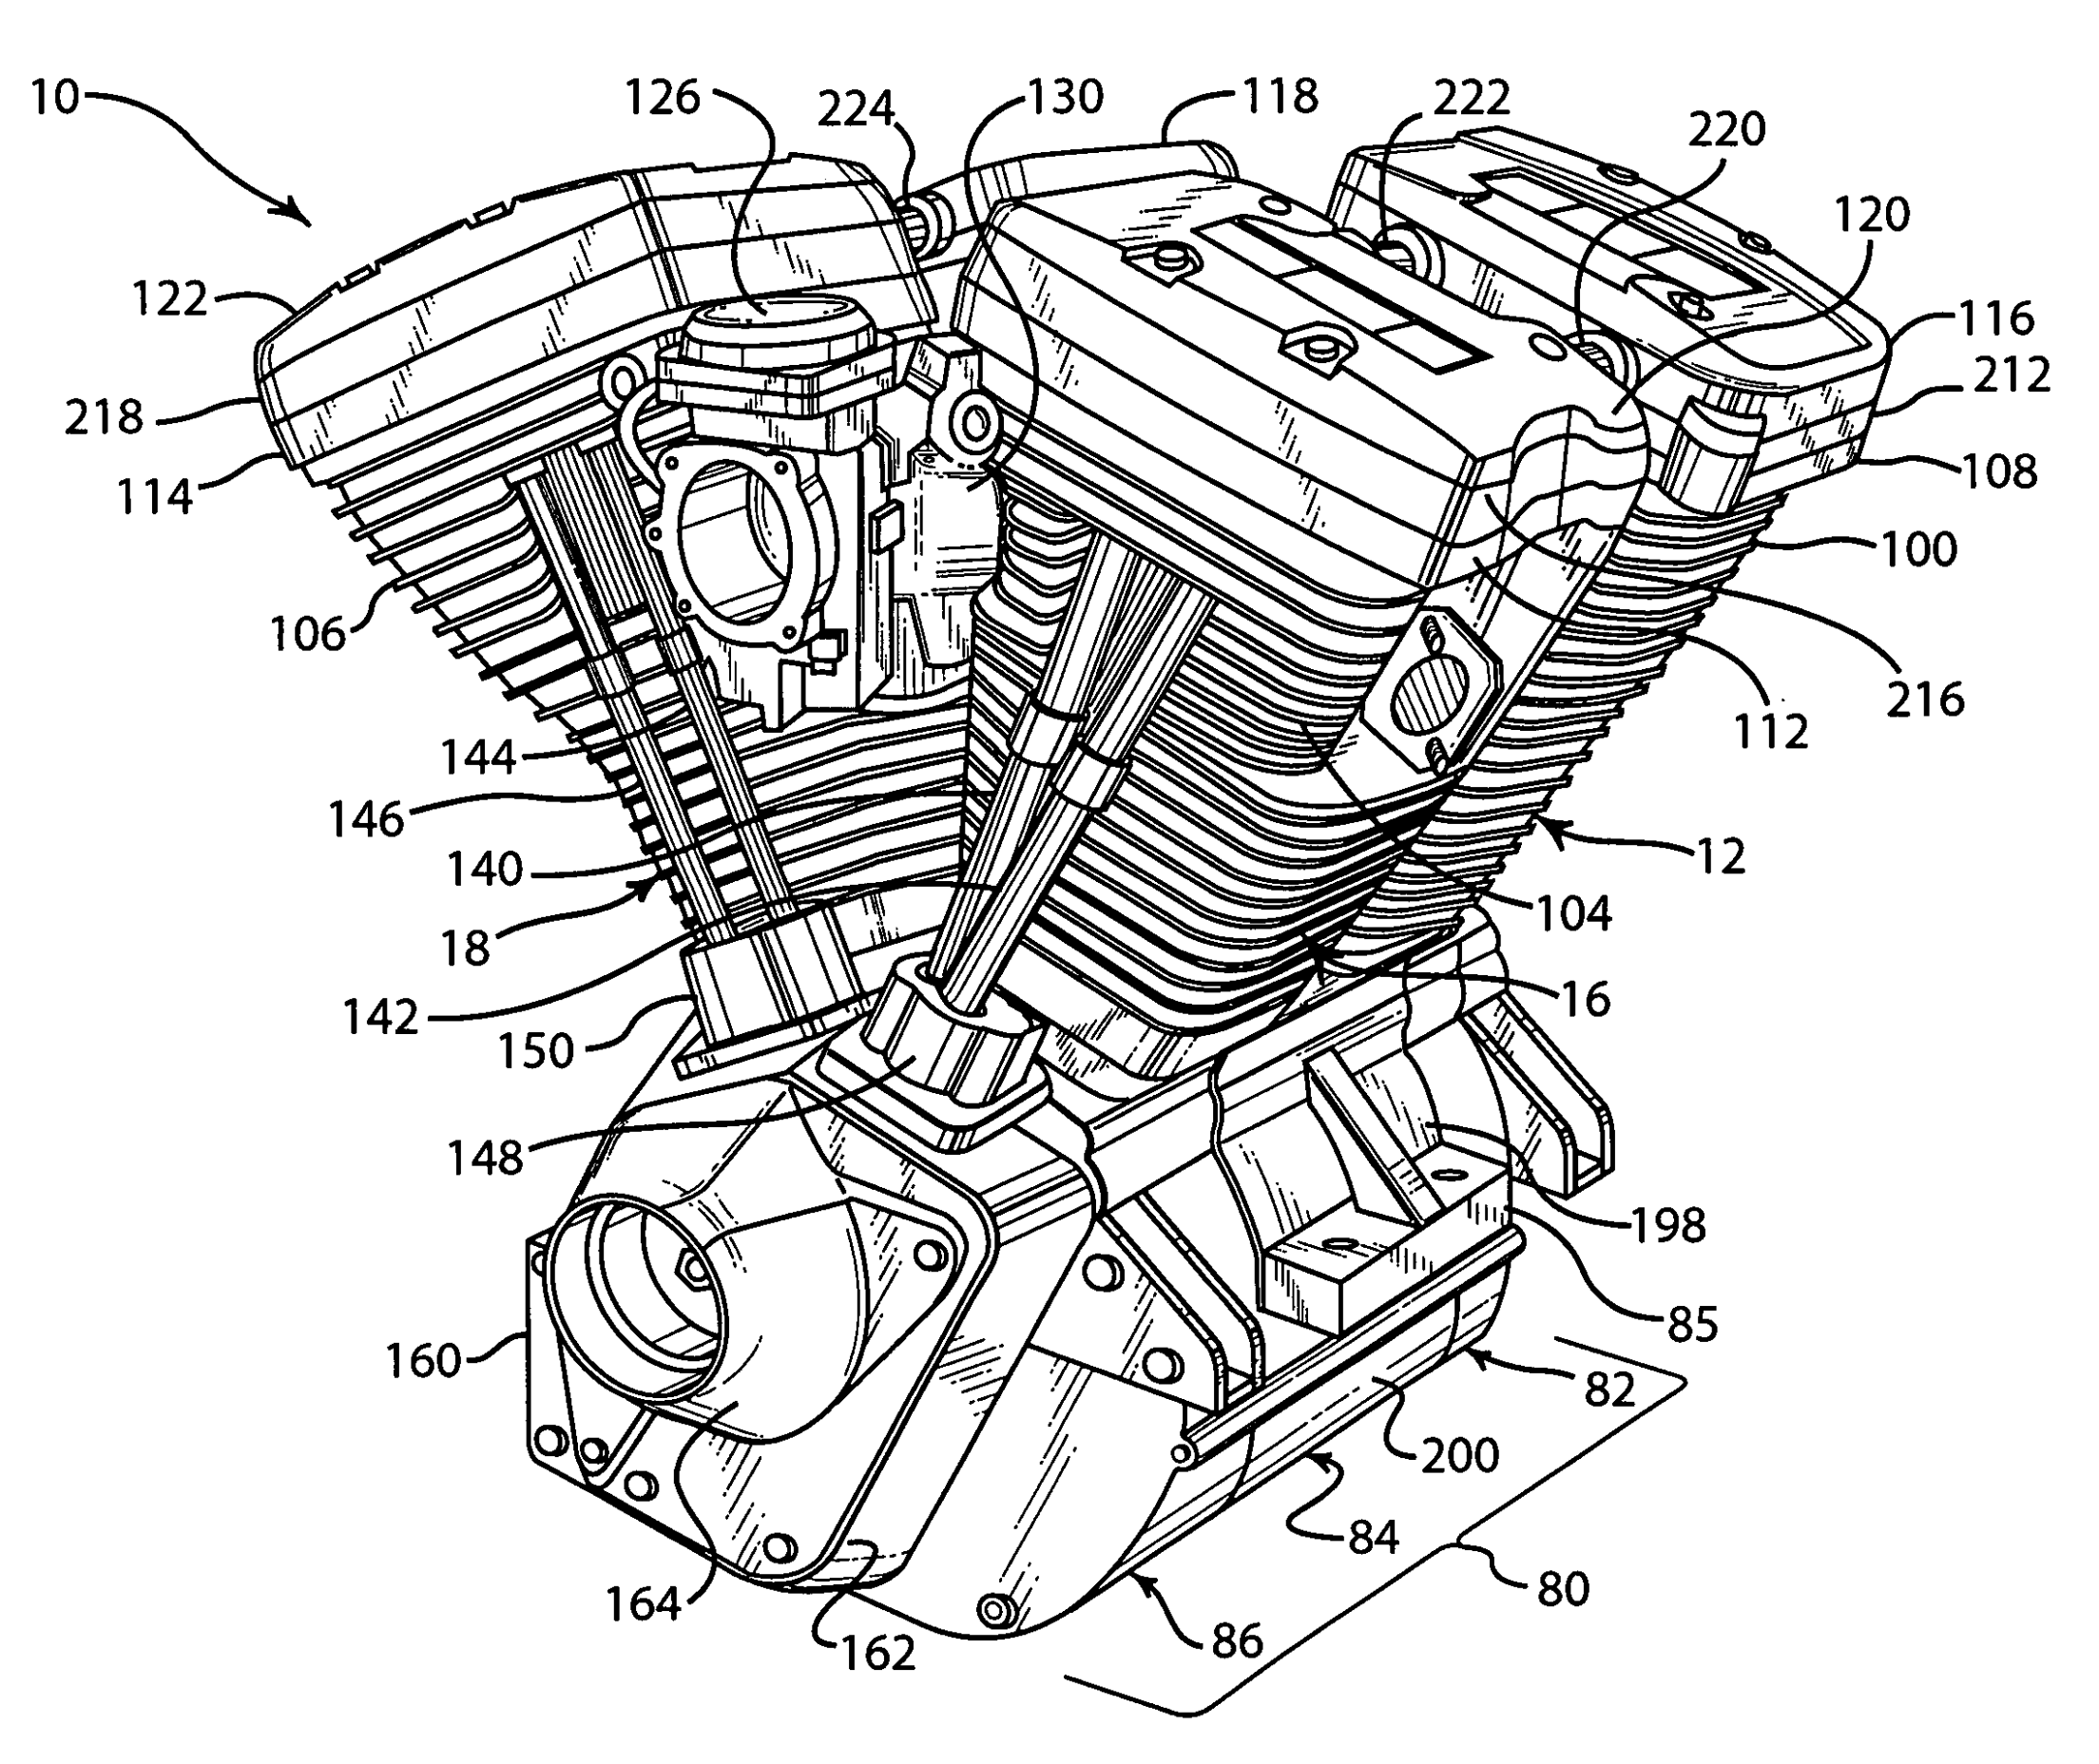 Harley Davidson Twin Cam Engine Diagram Review In 2020 Harley Davidson Engines Harley Davidson Patent Drawing